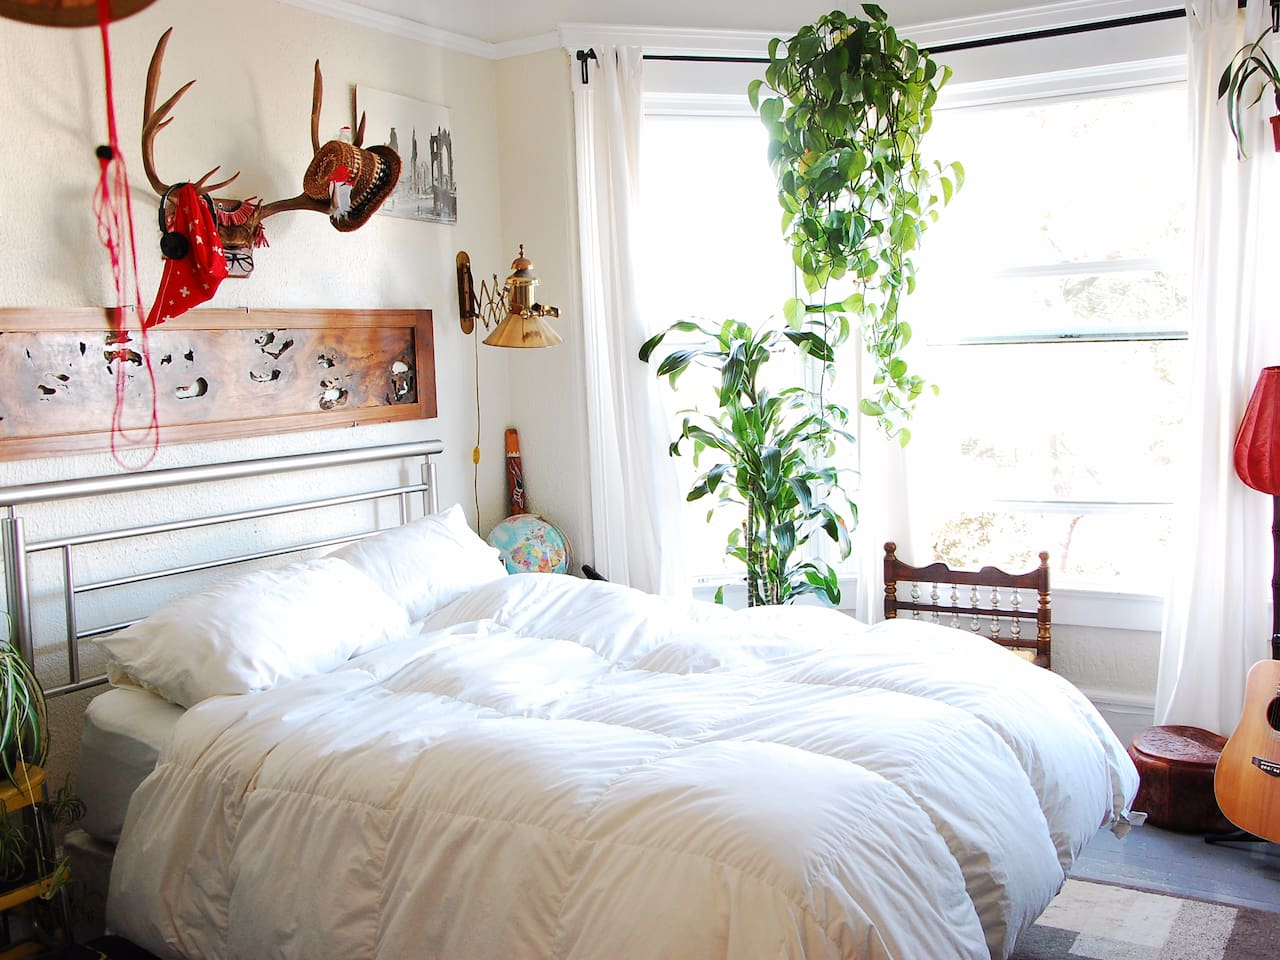 Golden Gate - a bright and sunny room filled with greenery and sunshine!